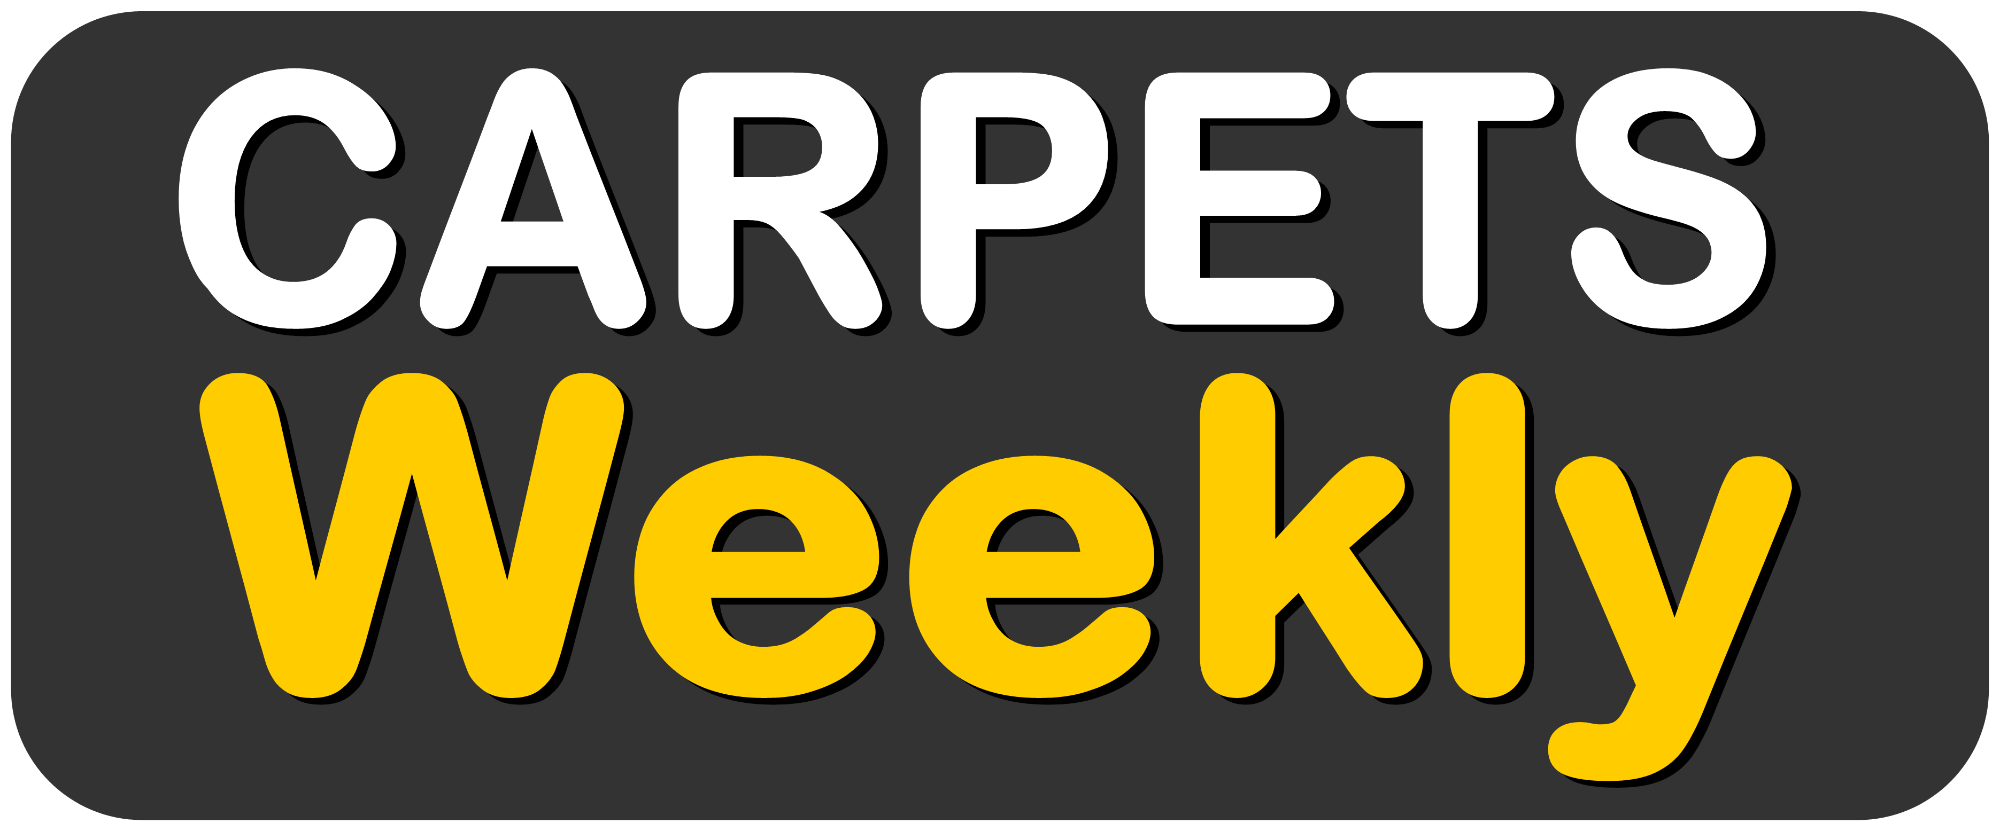 Carpets Weekly for Carpets Vinyls and Laminate. Pay weekly options